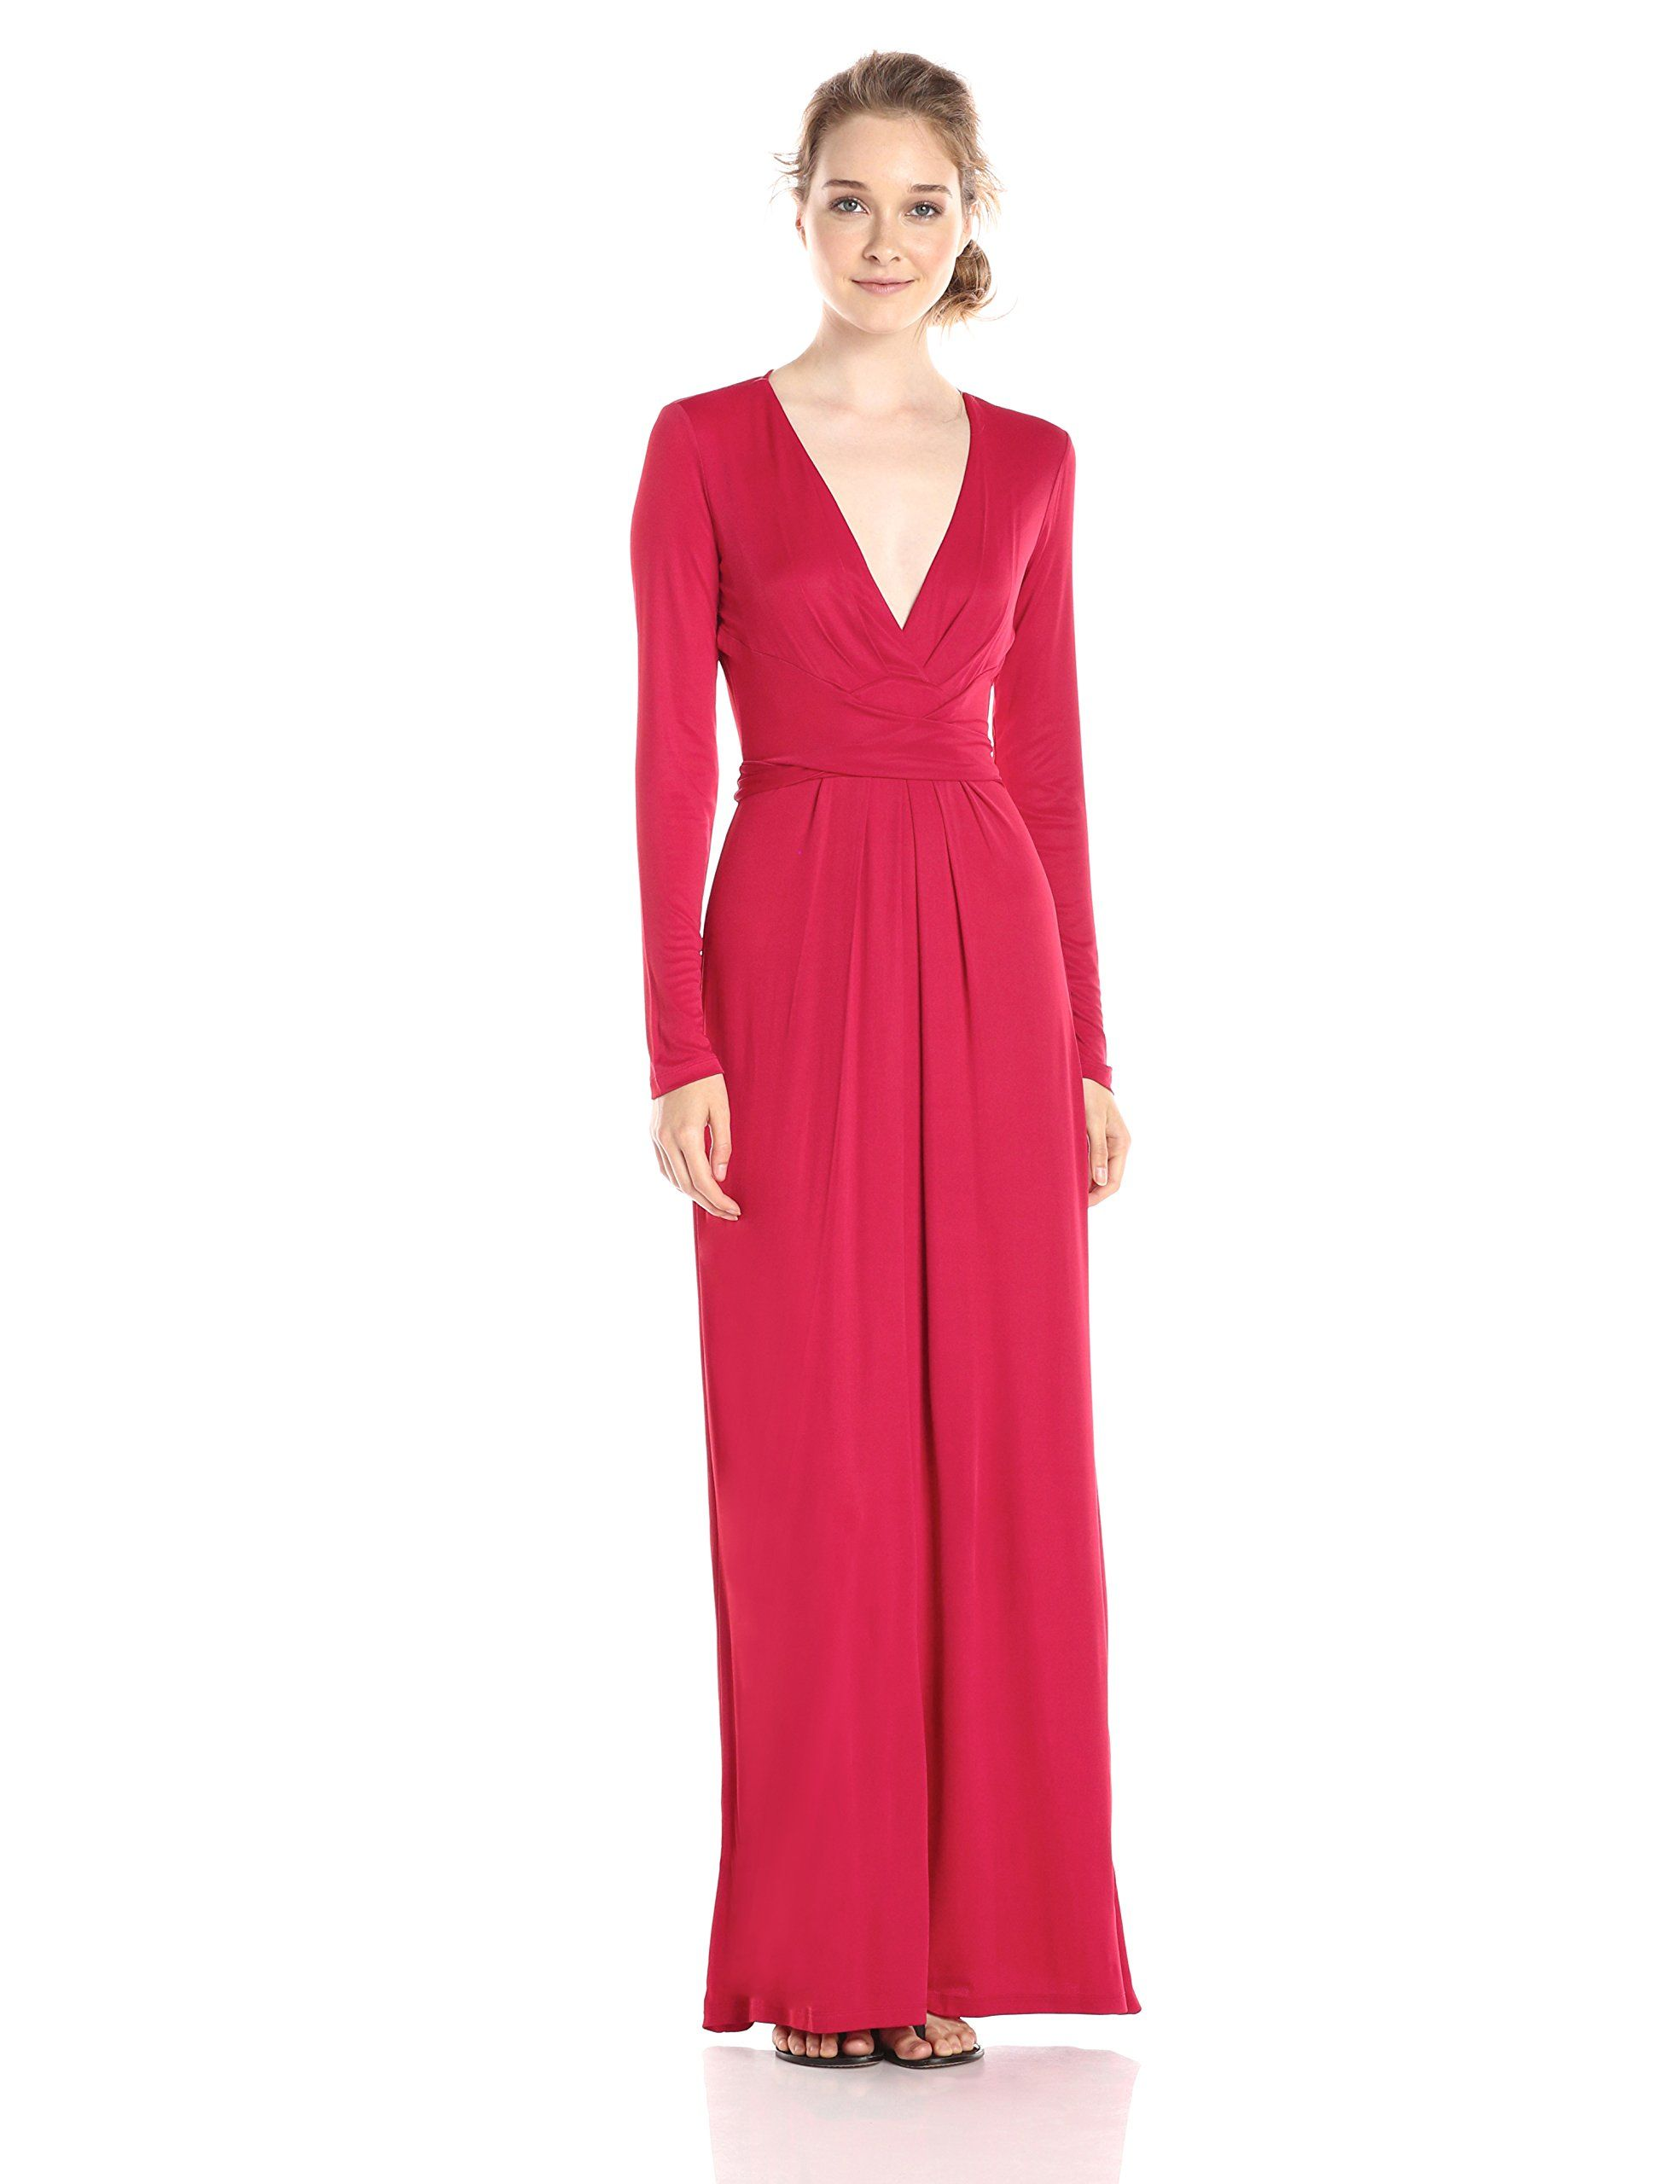 Bcbgmax azria womenus pearl wrap maxi dress new red small pullon